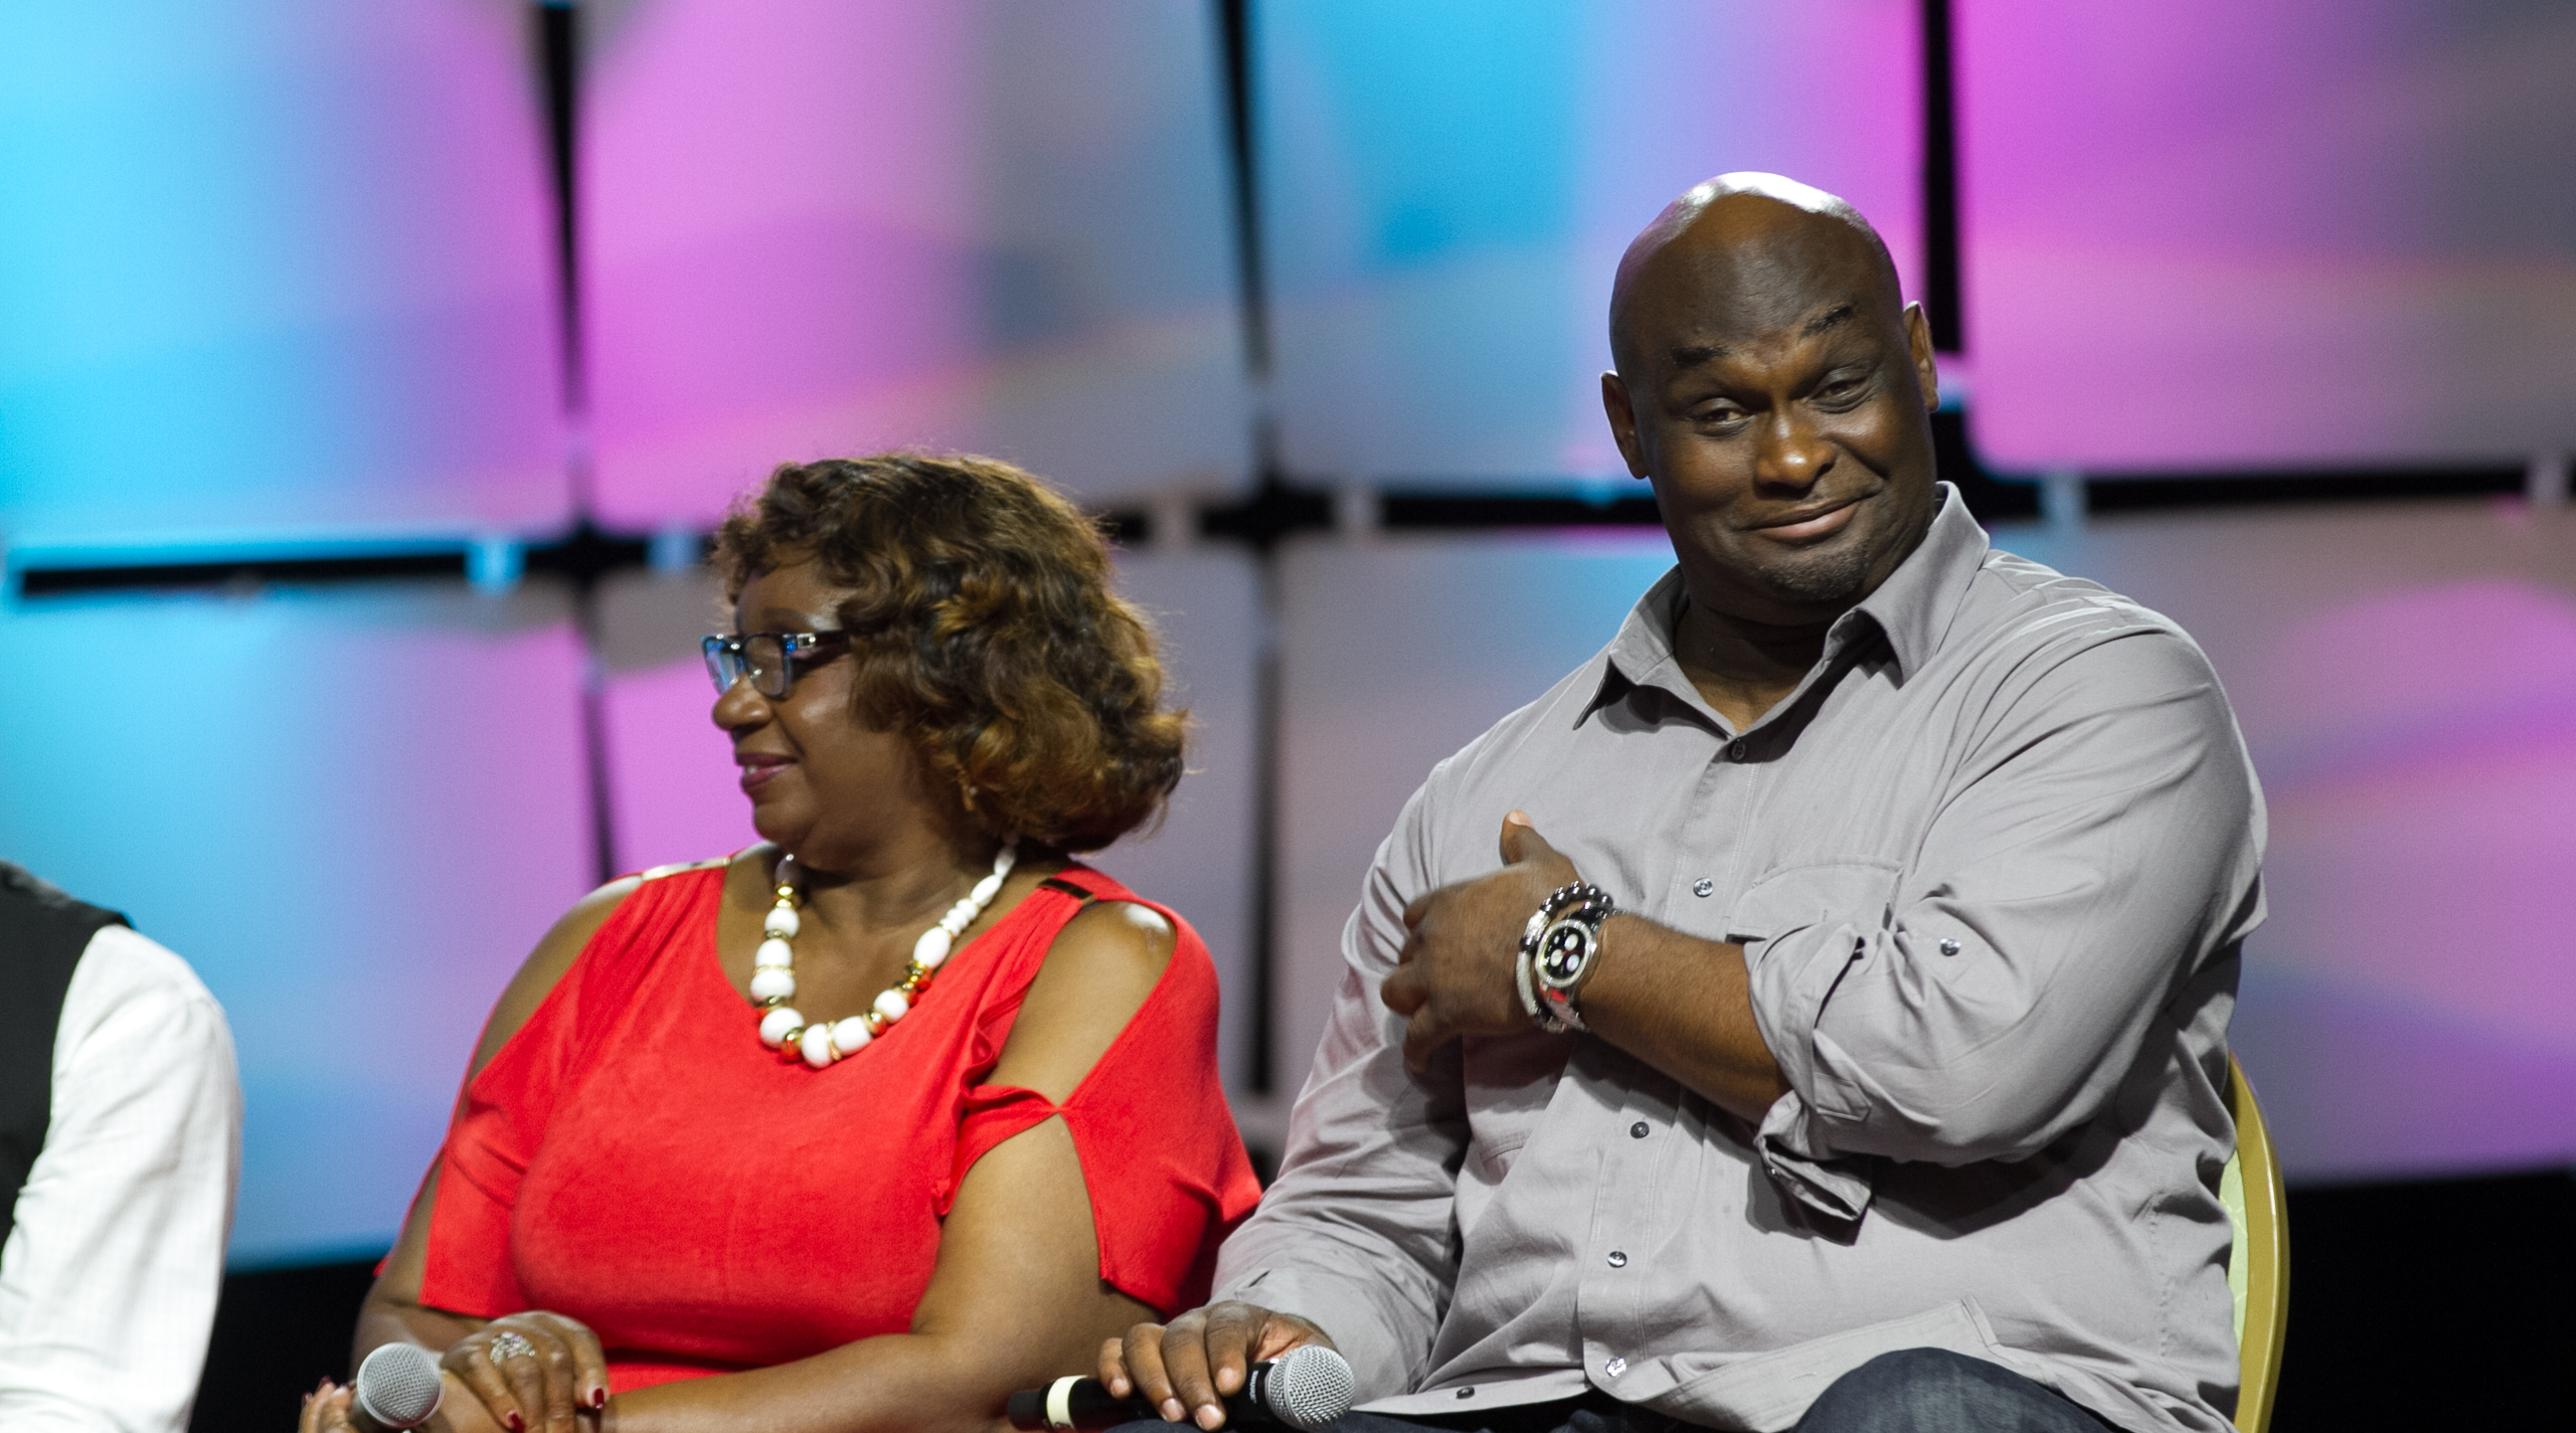 670b069437d7 Reports Have Surfaced That Tommy Ford Is Fighting For His Life ...